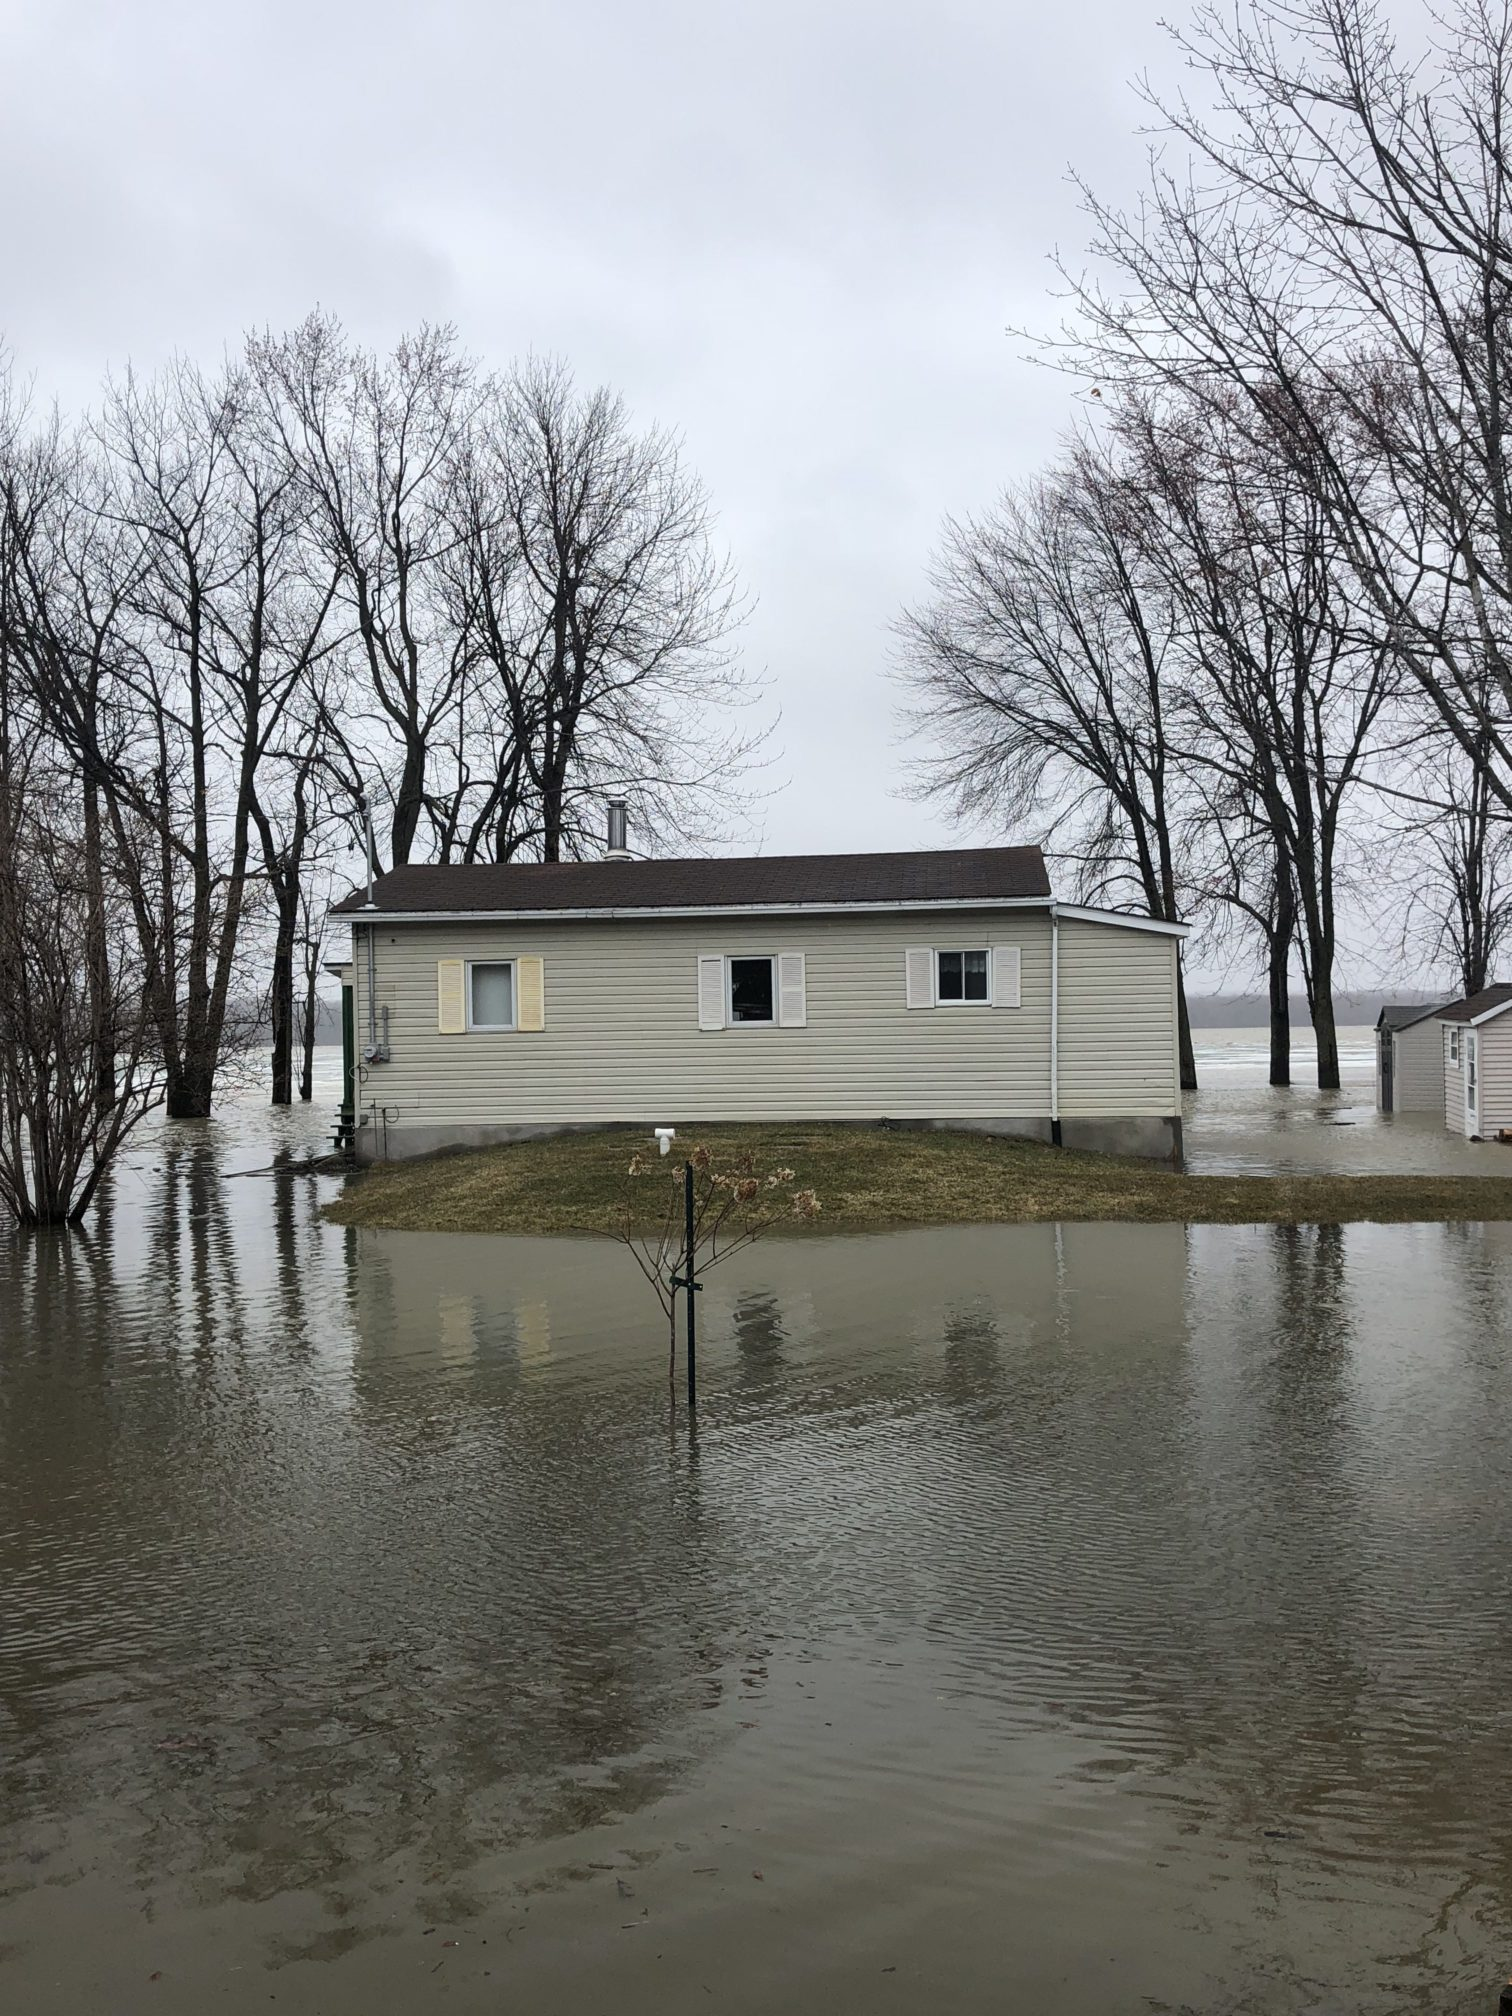 Septic system in a flood zone